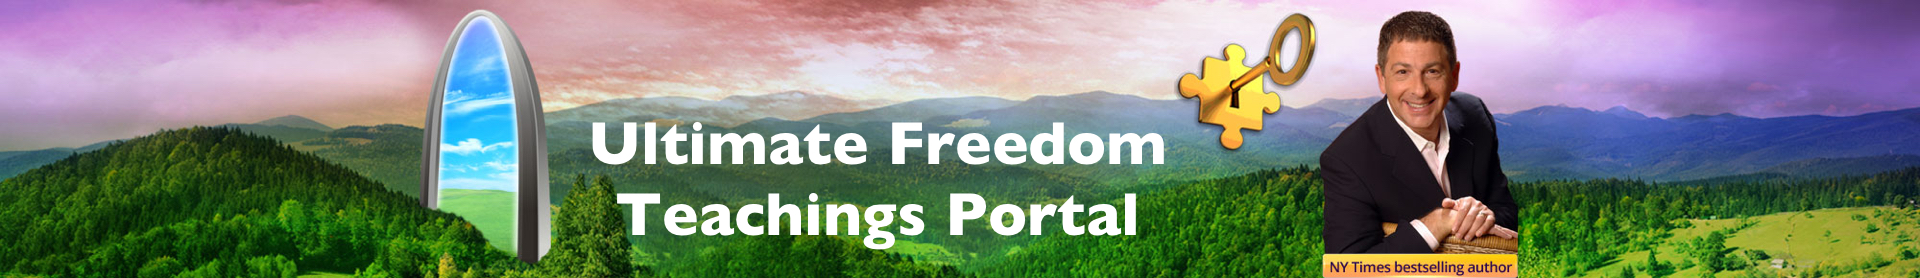 The Ultimate Freedom Teachings Portal